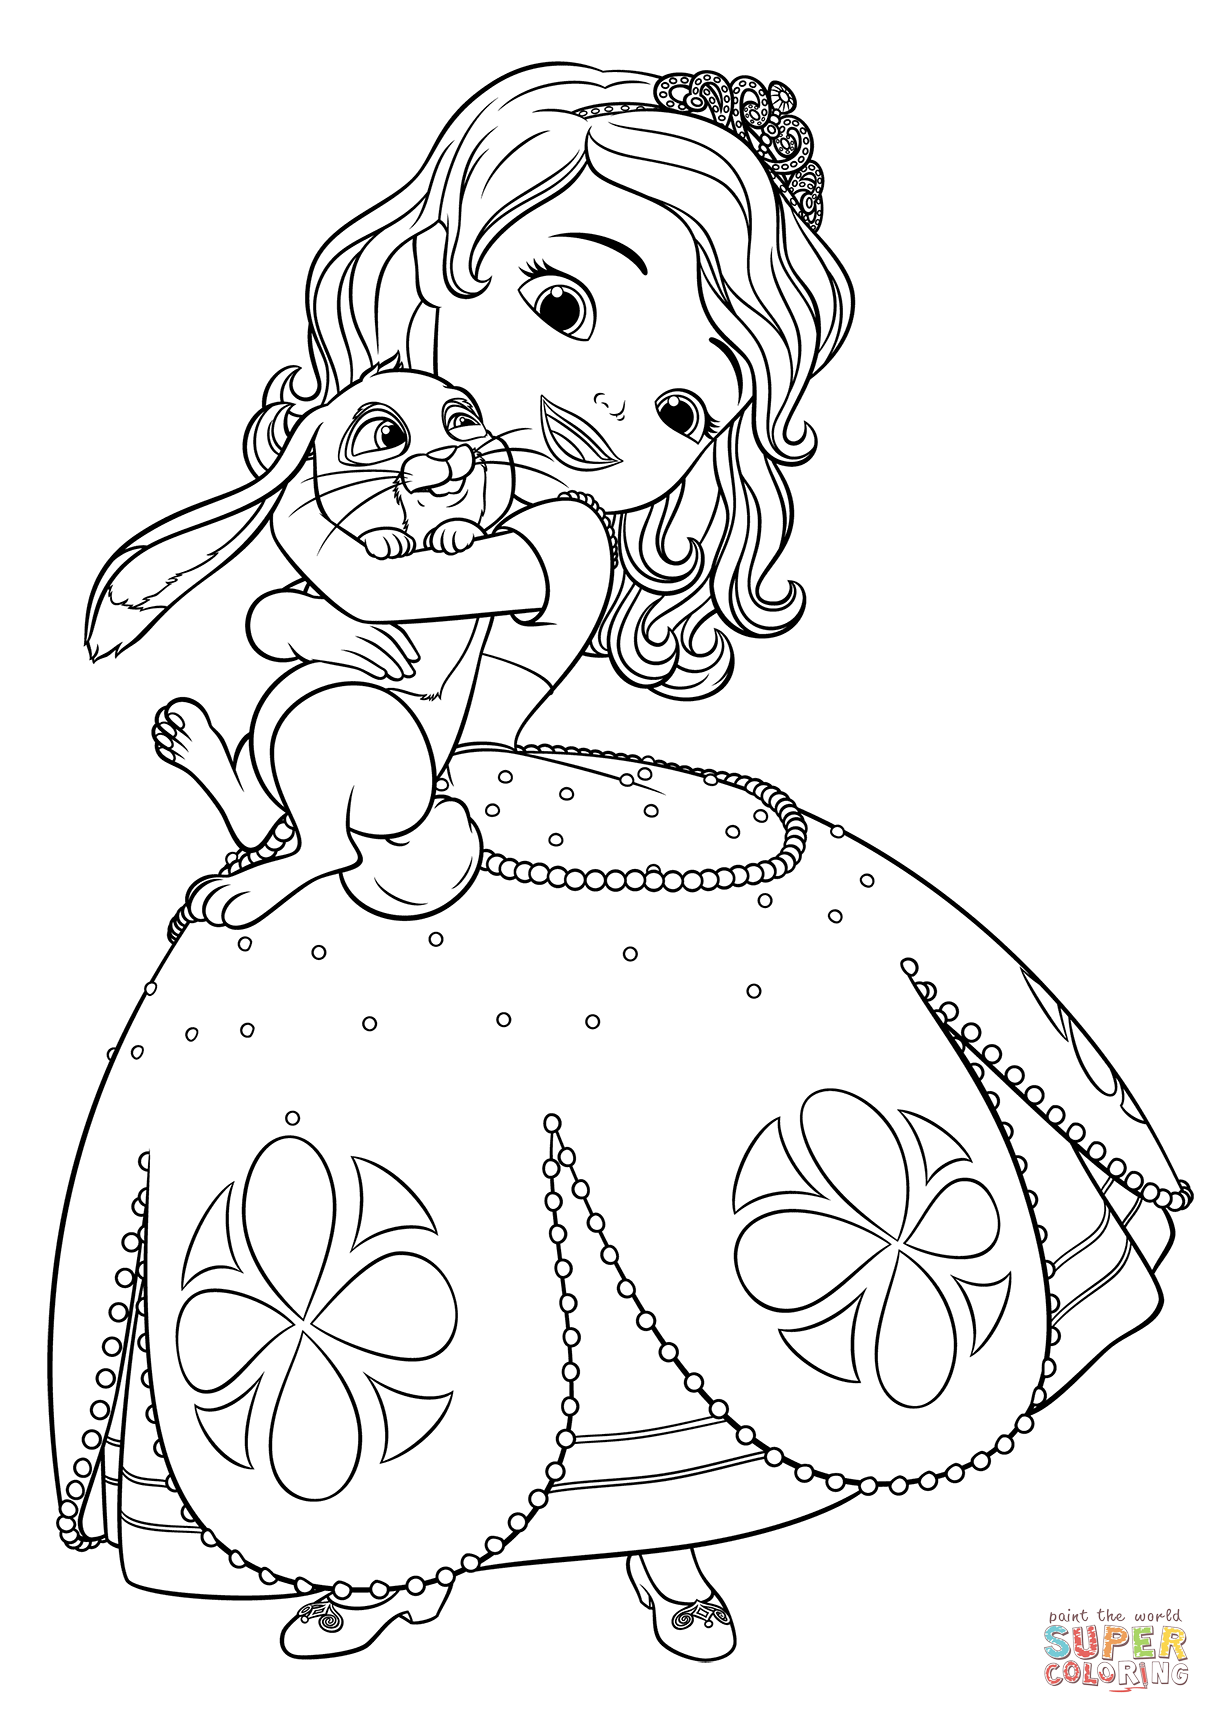 sophia the first coloring pages gambar sophia untuk mewarnai sophia coloring first pages the